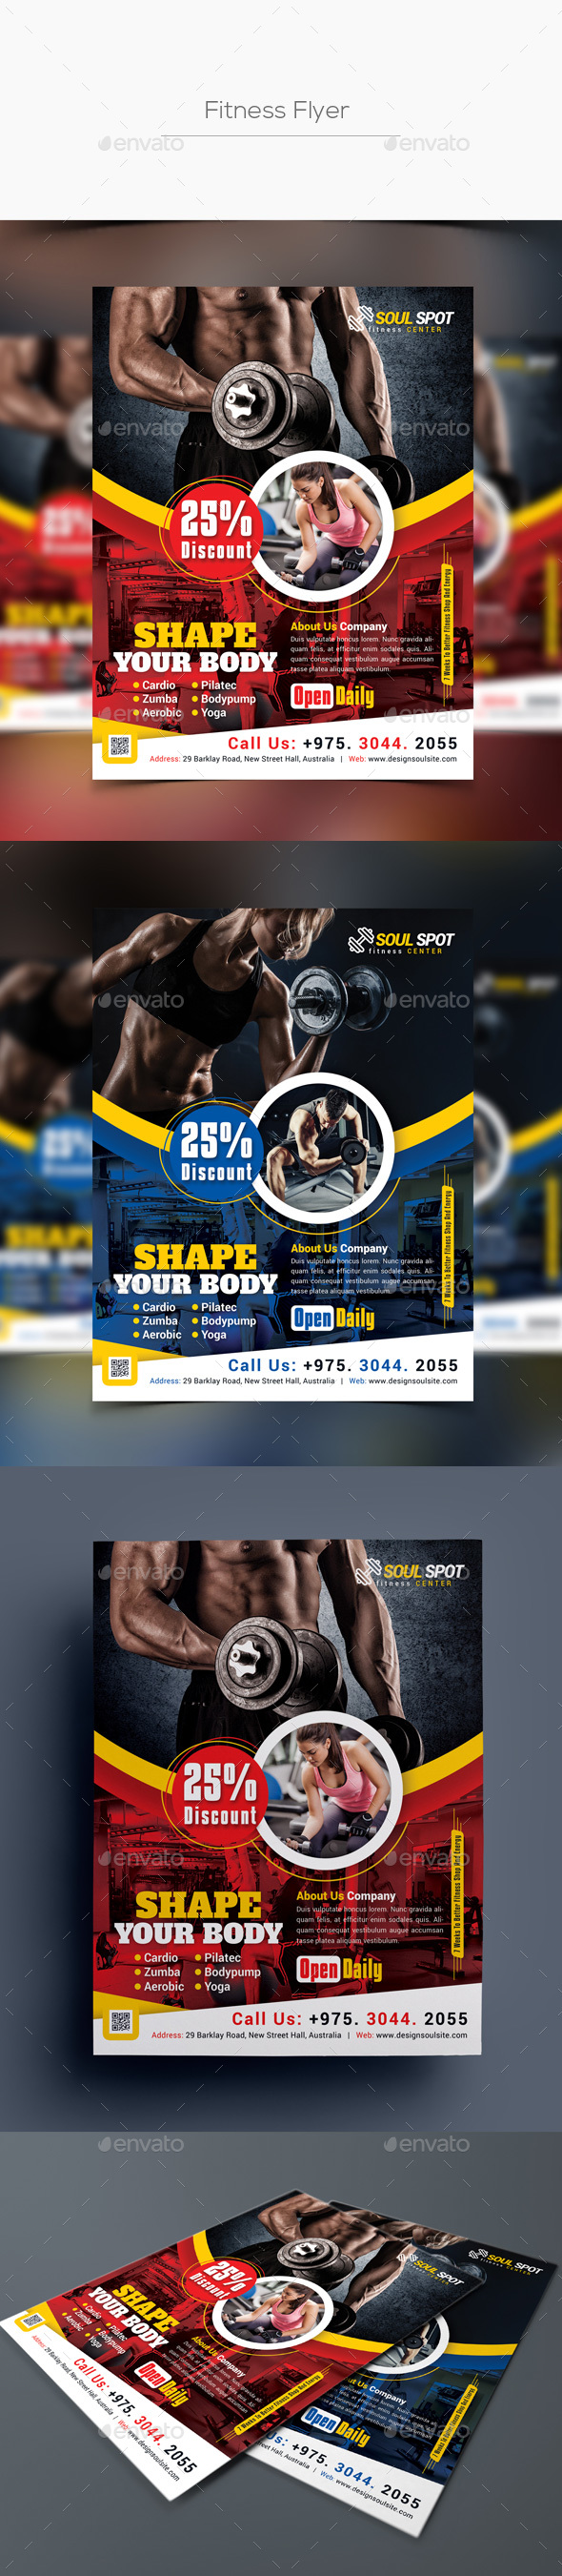 GraphicRiver Fitness Flyer 20793325